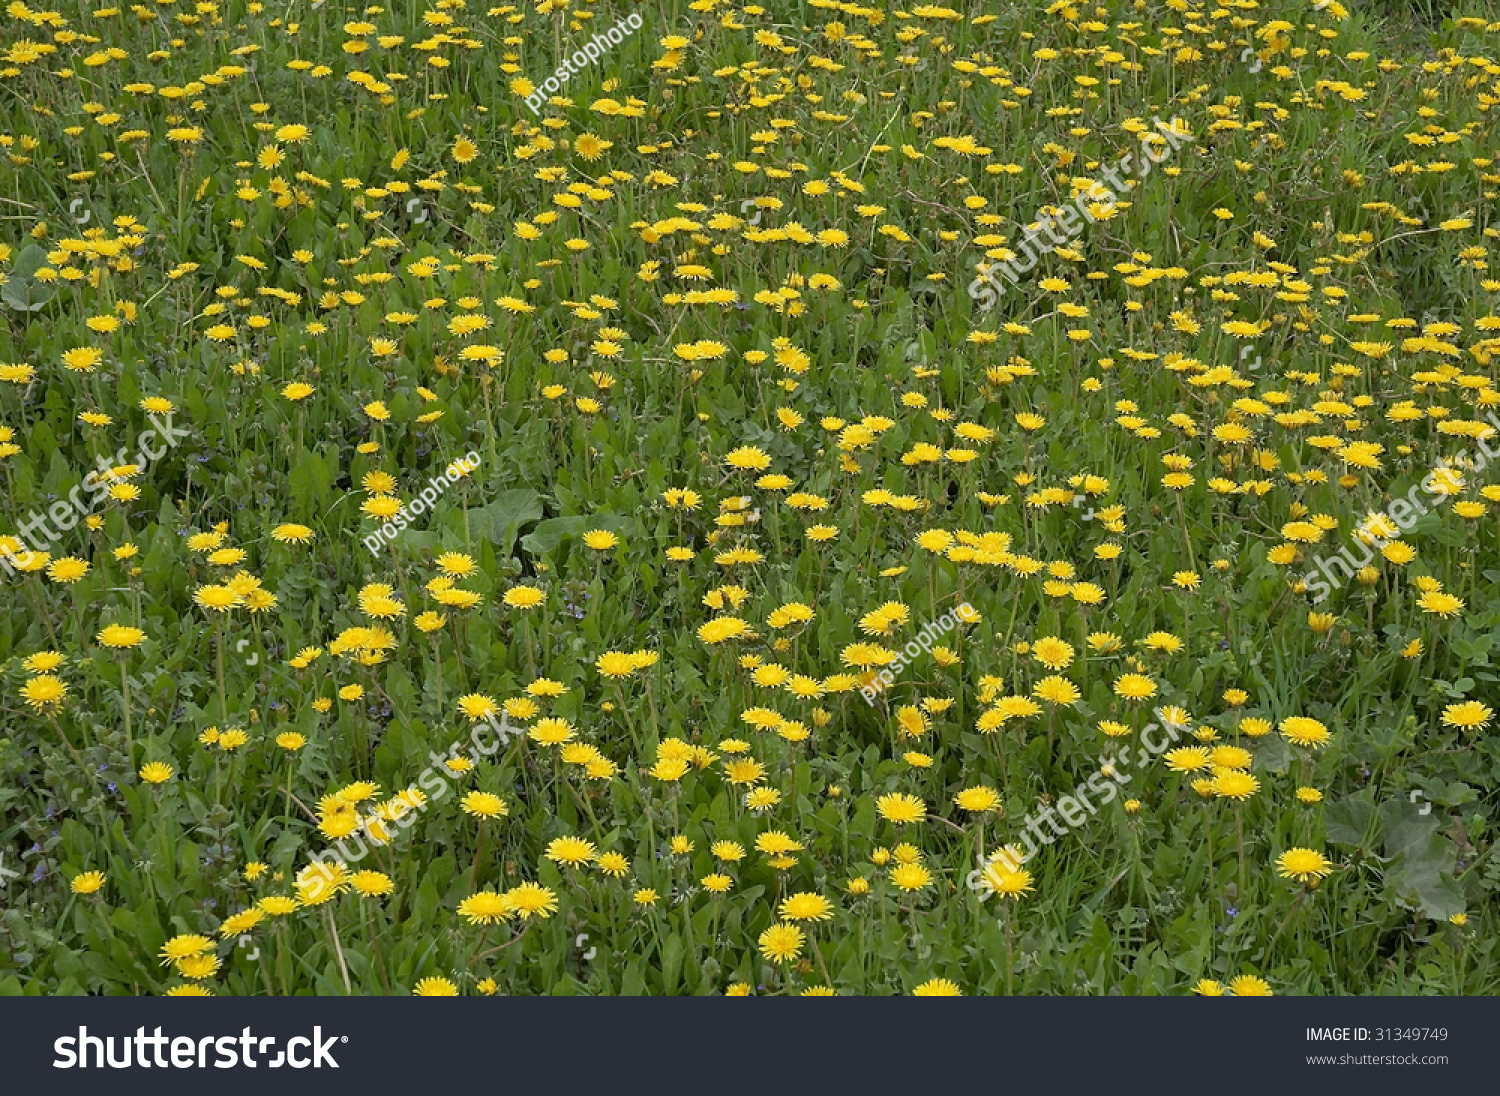 Background Wild Yellow Flowers Grass Stock Photo Download Now